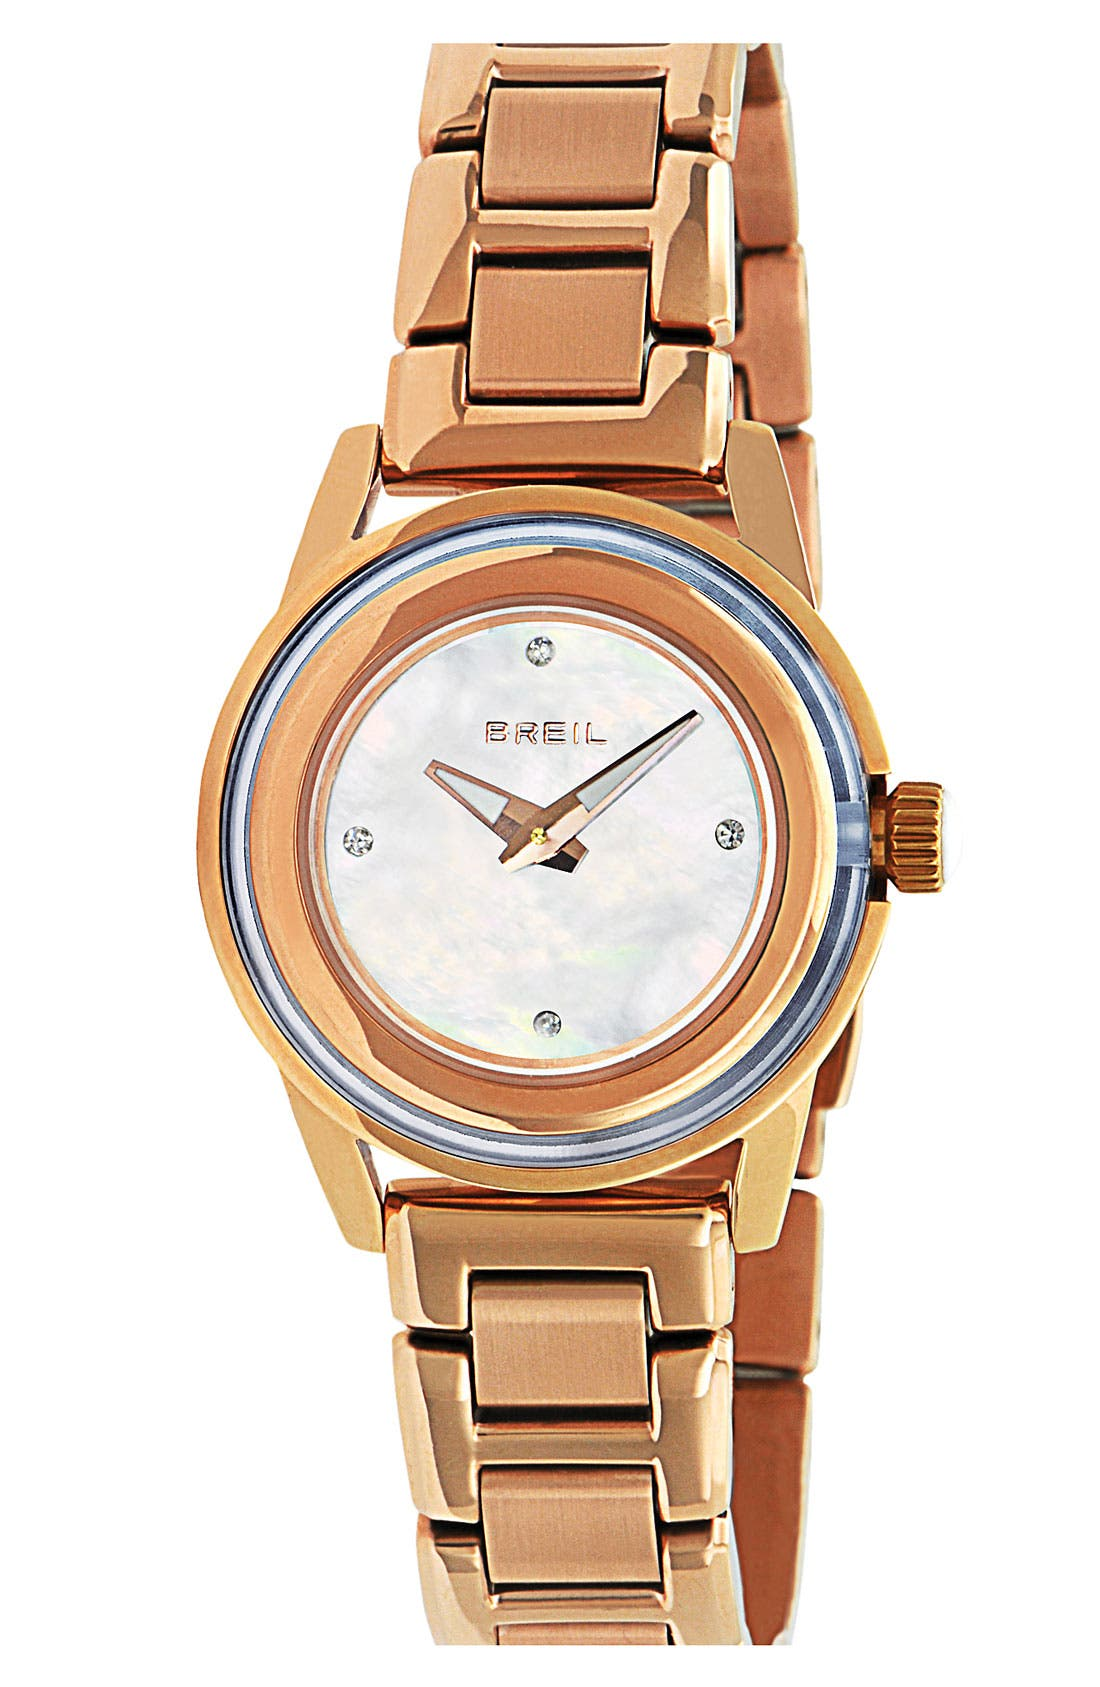 Main Image - Breil 'Orchestra' Crystal Index Bracelet Watch, 28mm